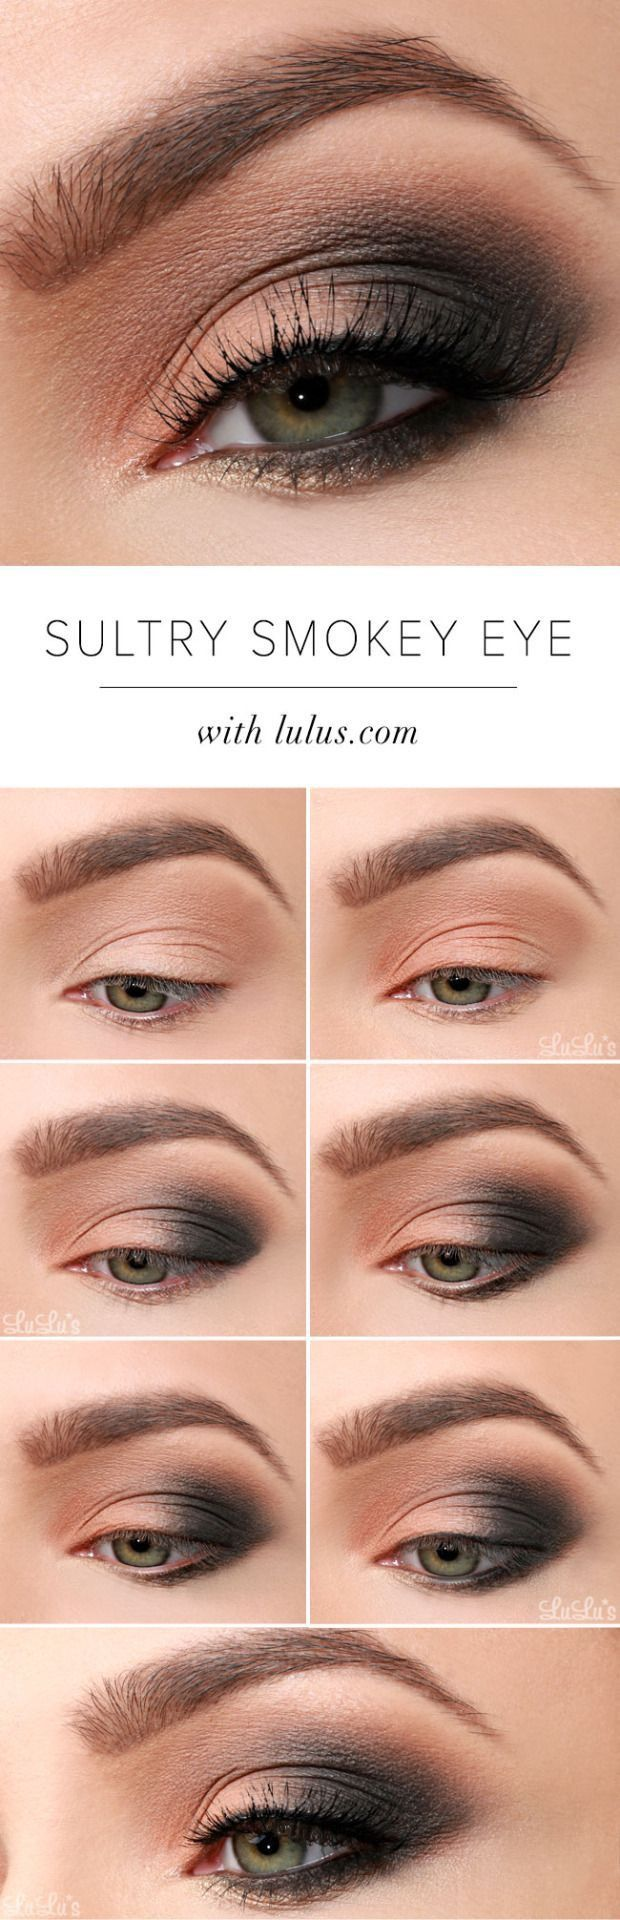 Coral smoky eye look